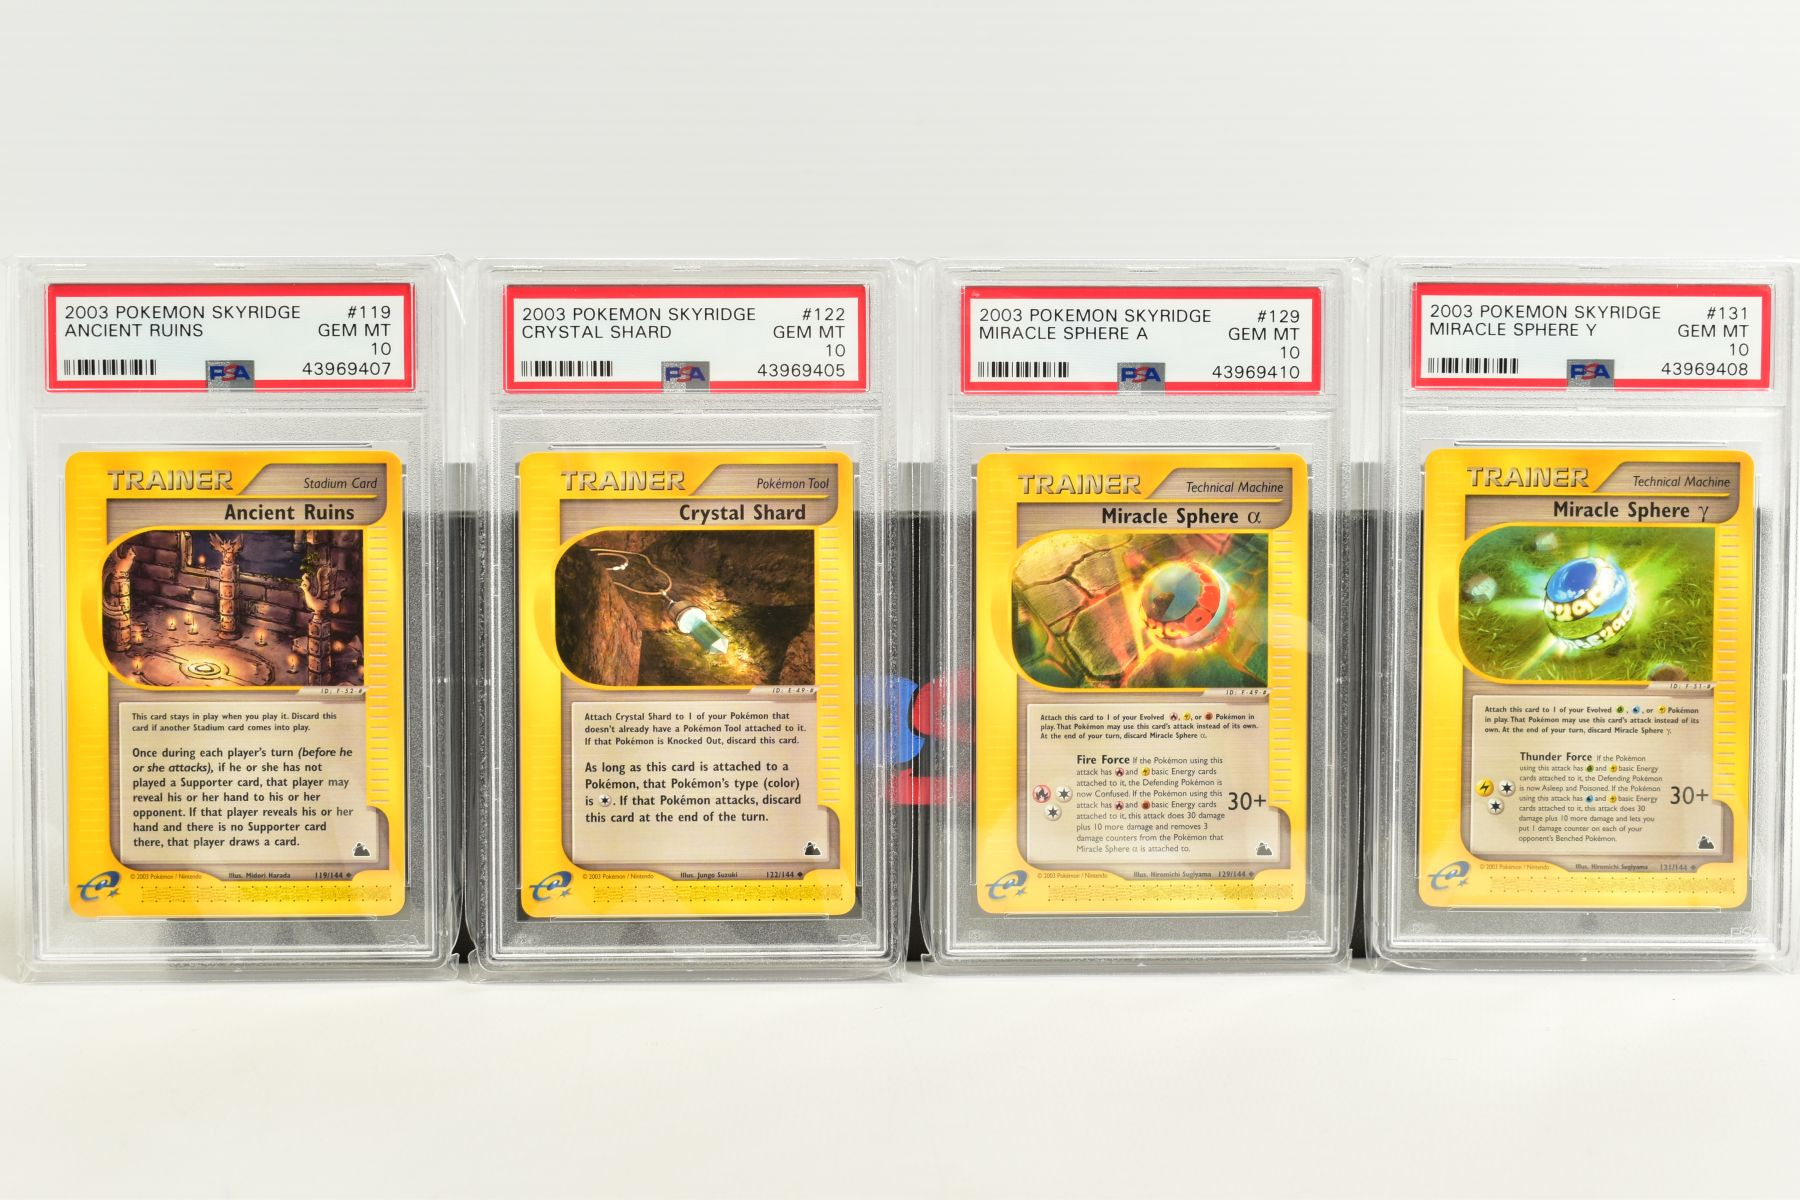 A QUANTITY OF PSA GRADED POKEMON SKYRIDGE SET CARDS, all are graded GEM MINT 10 and are sealed in - Image 7 of 9